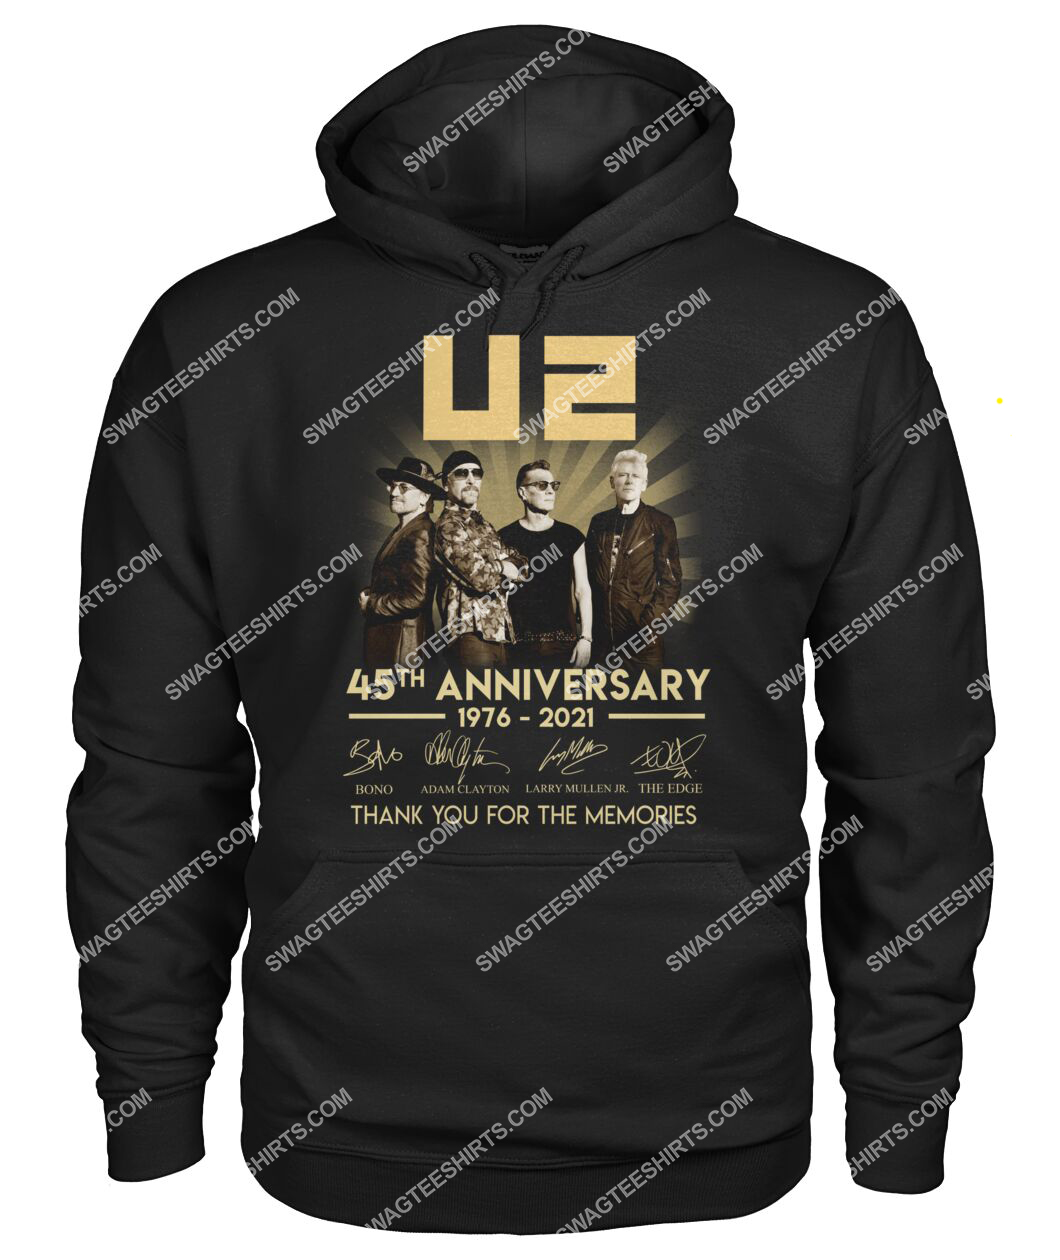 u2 music band 45th anniversary thank you for memories signatures hoodie 1